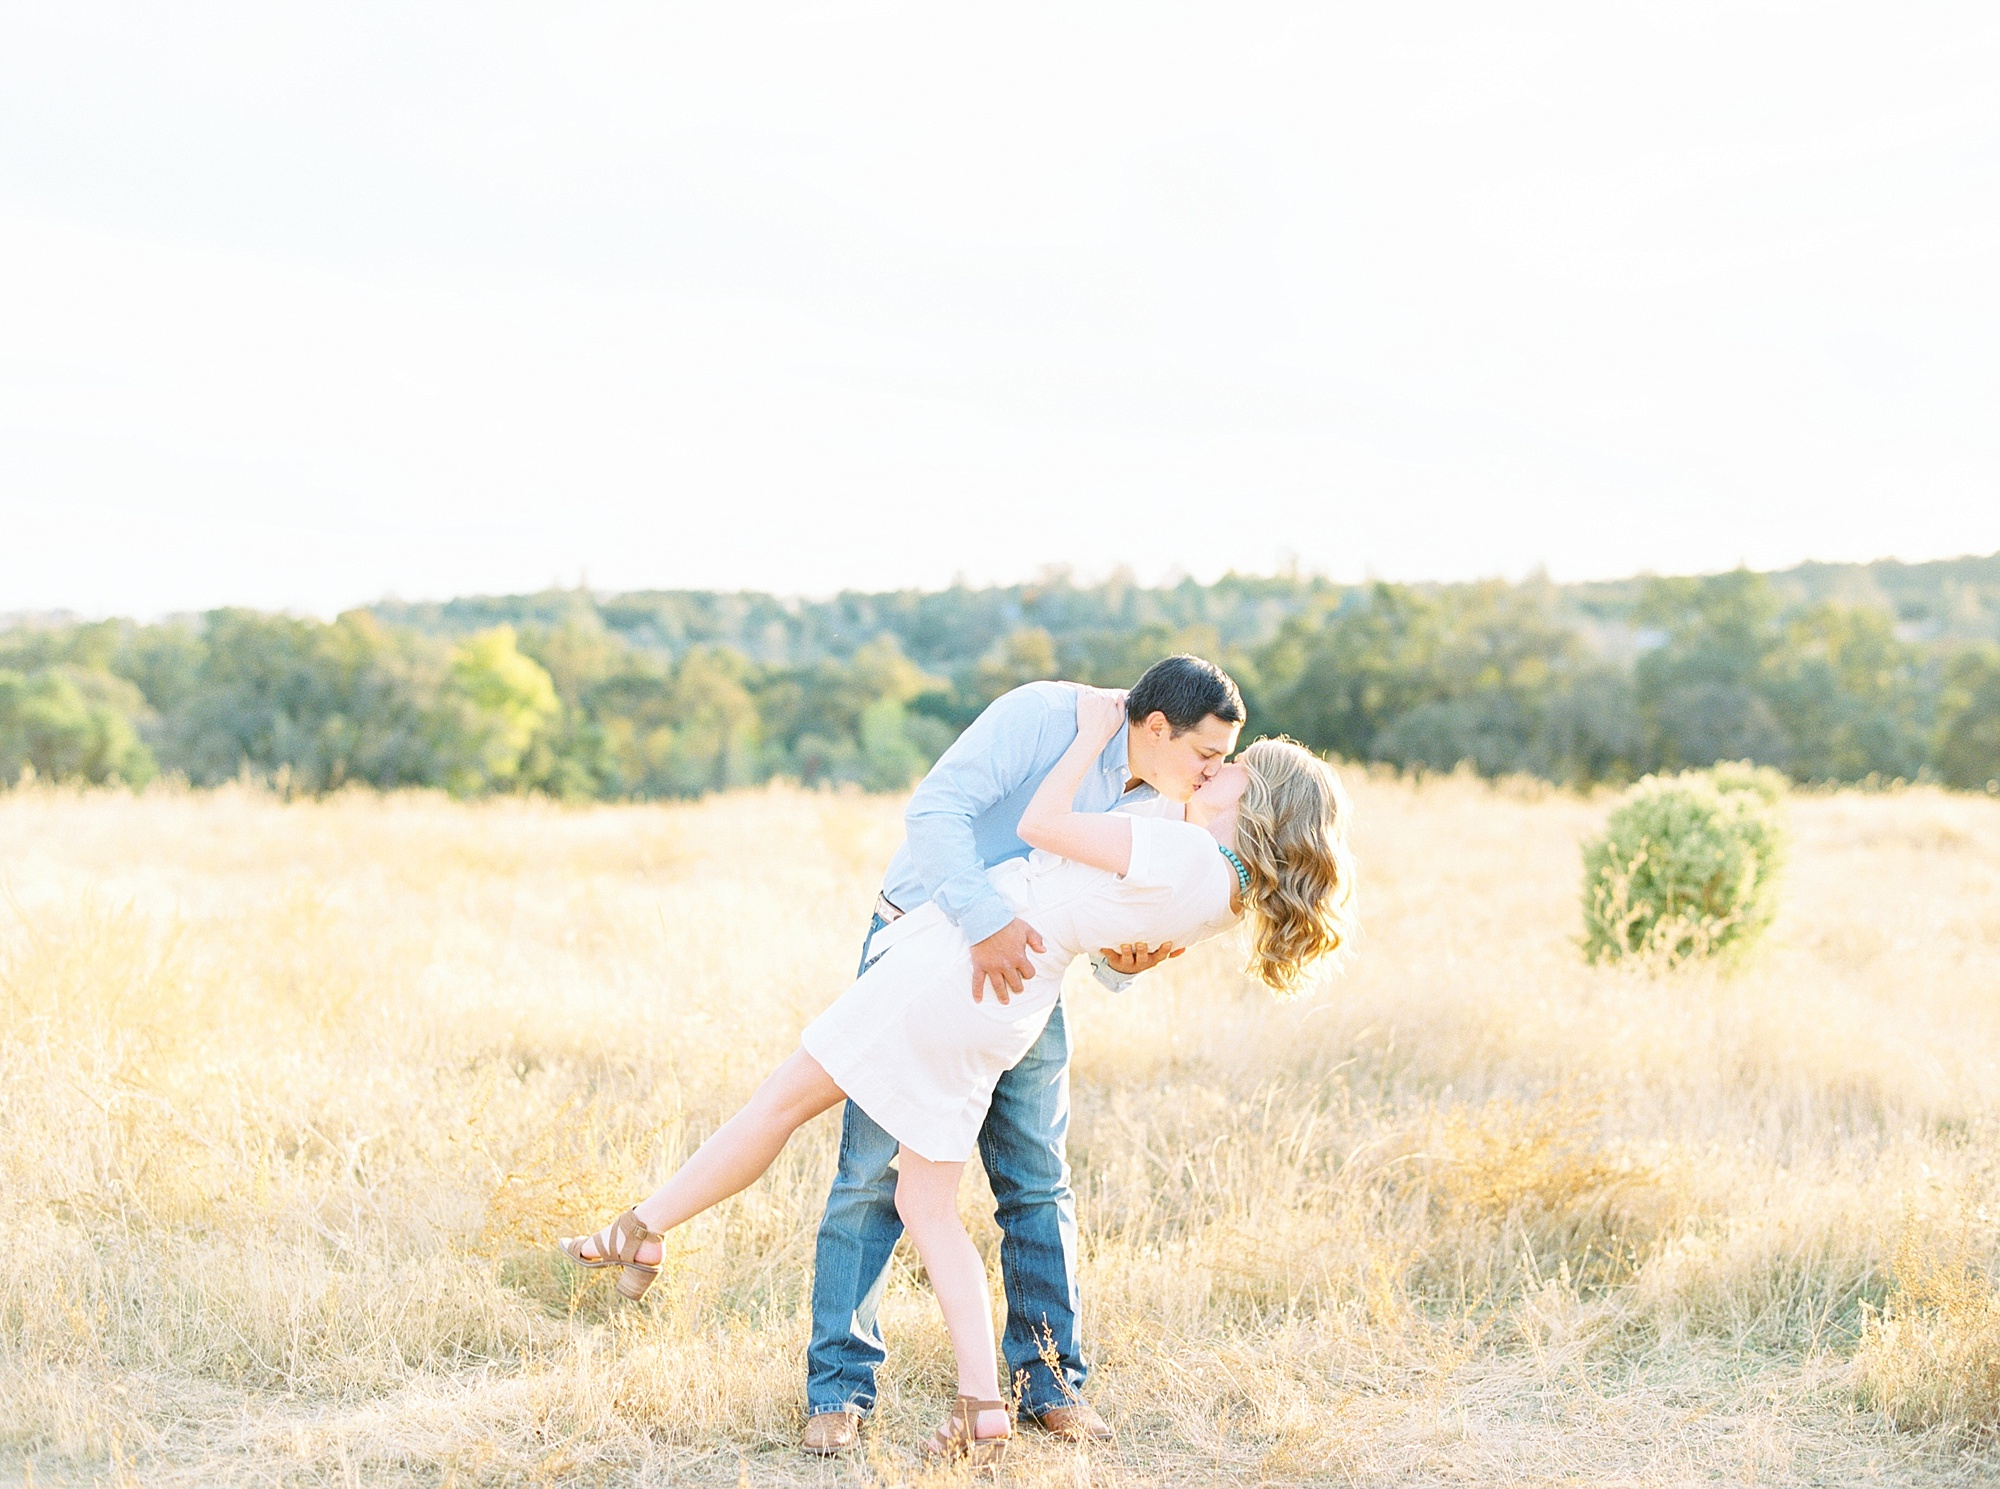 Golden Hills Engagement Session - Film Engagement Session - Ashley Baumgartner - Sacramento Wedding Photography - Stone Barn Ranch Wedding Couple_0021.jpg